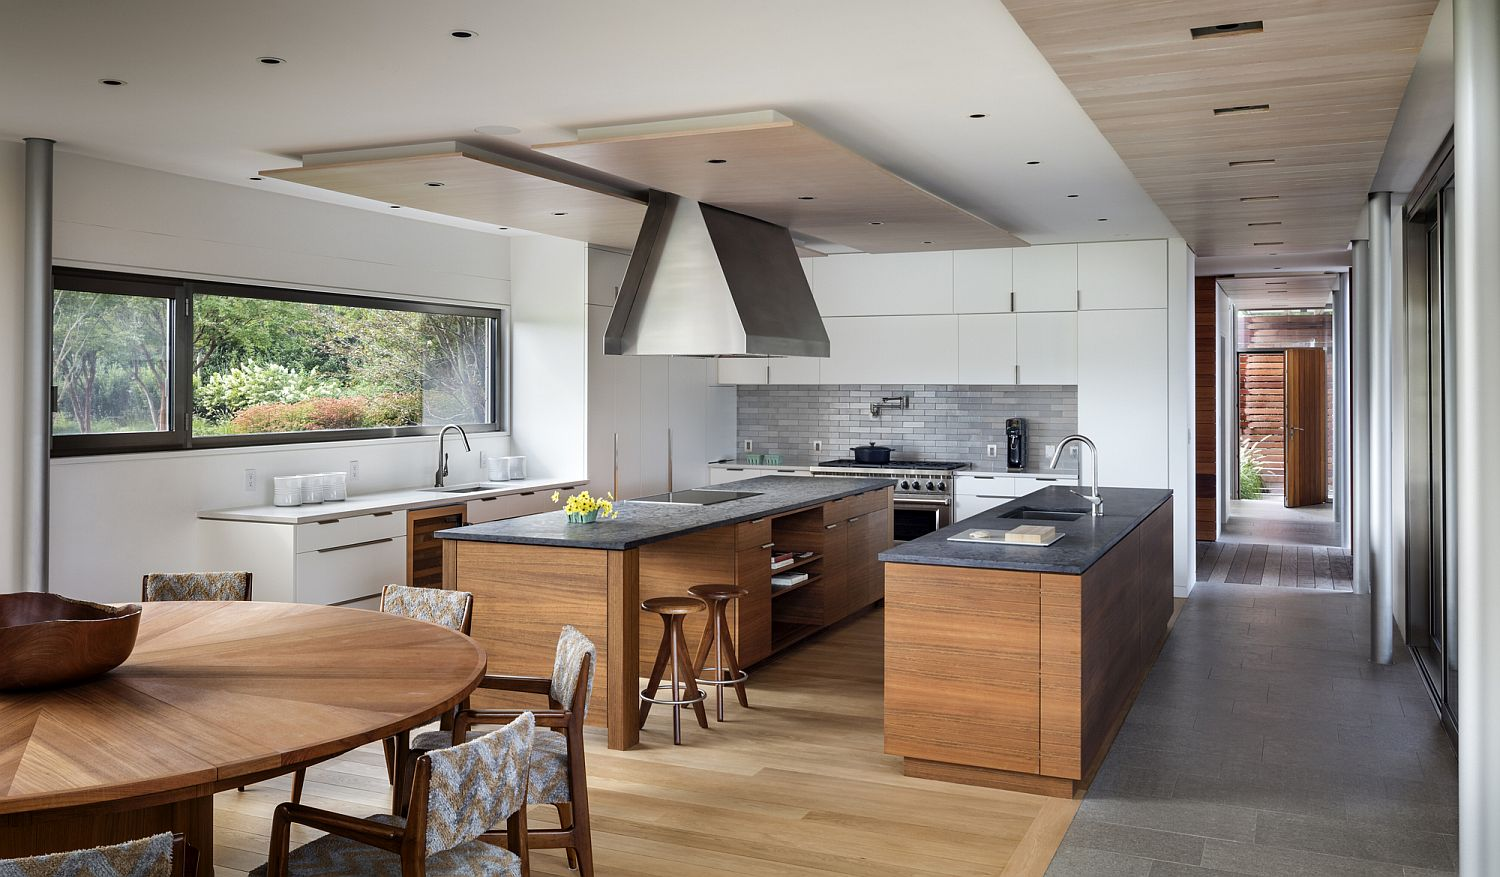 Relaxing-style-of-this-spacious-kitchen-feels-like-an-extension-of-the-living-room